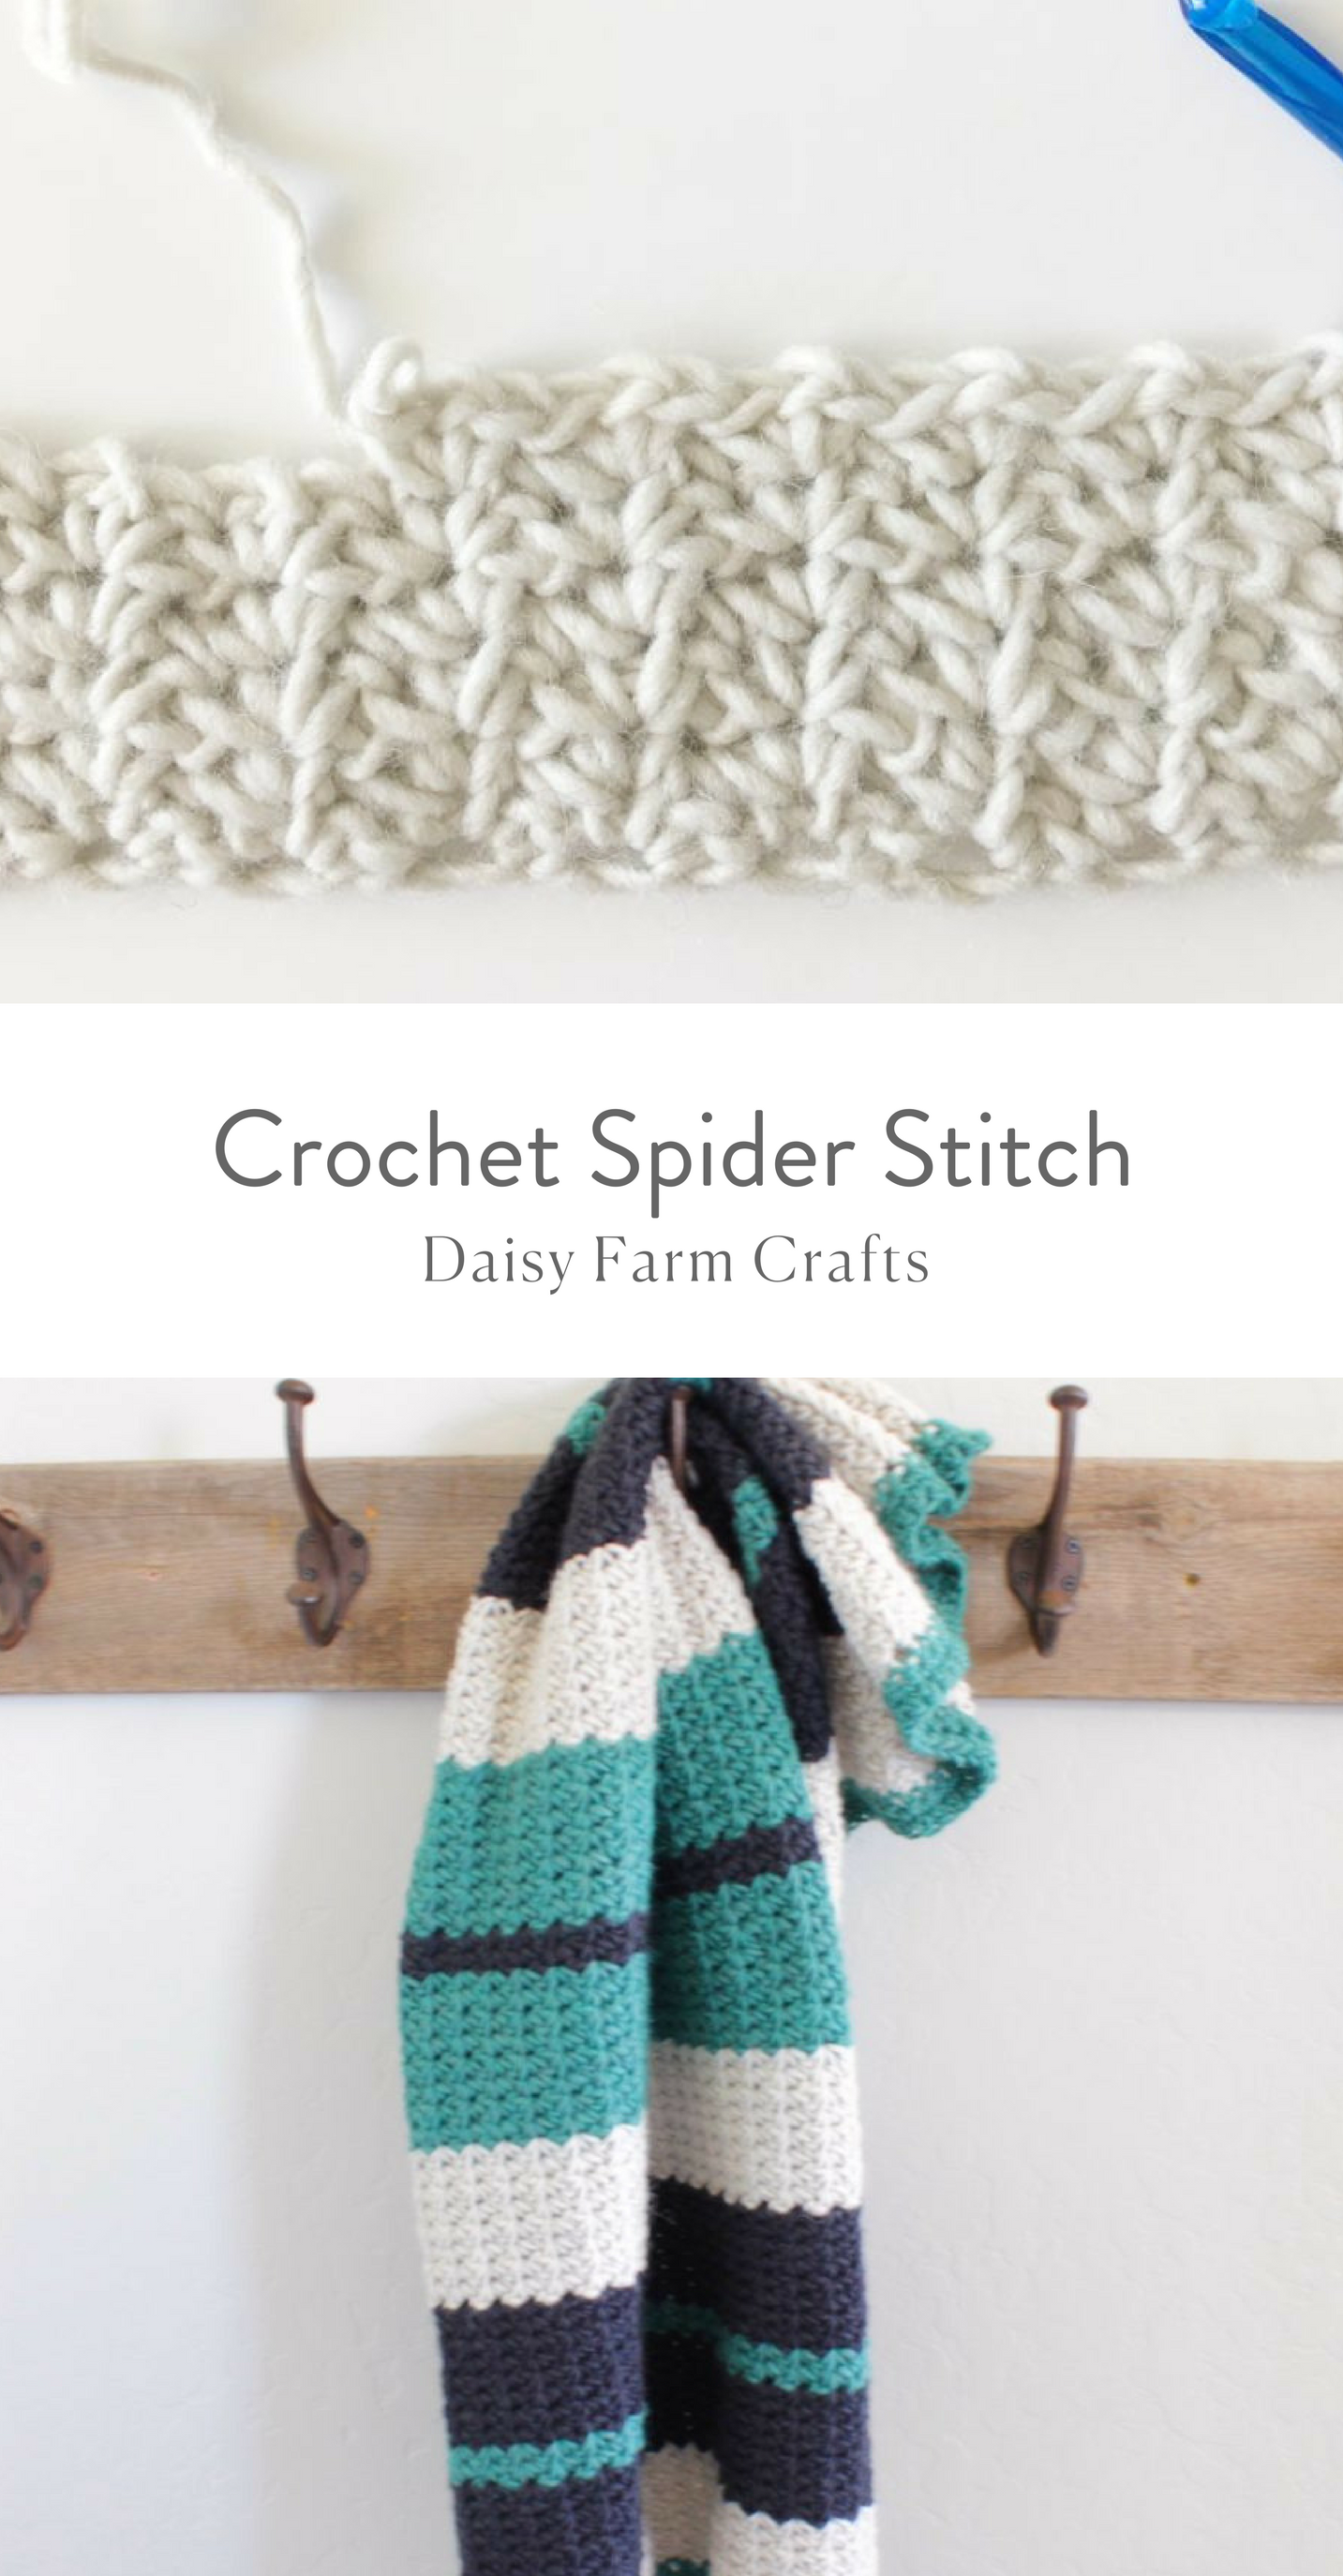 Free Pattern - How to Crochet the Spider Stitch #crochet   sewing ...